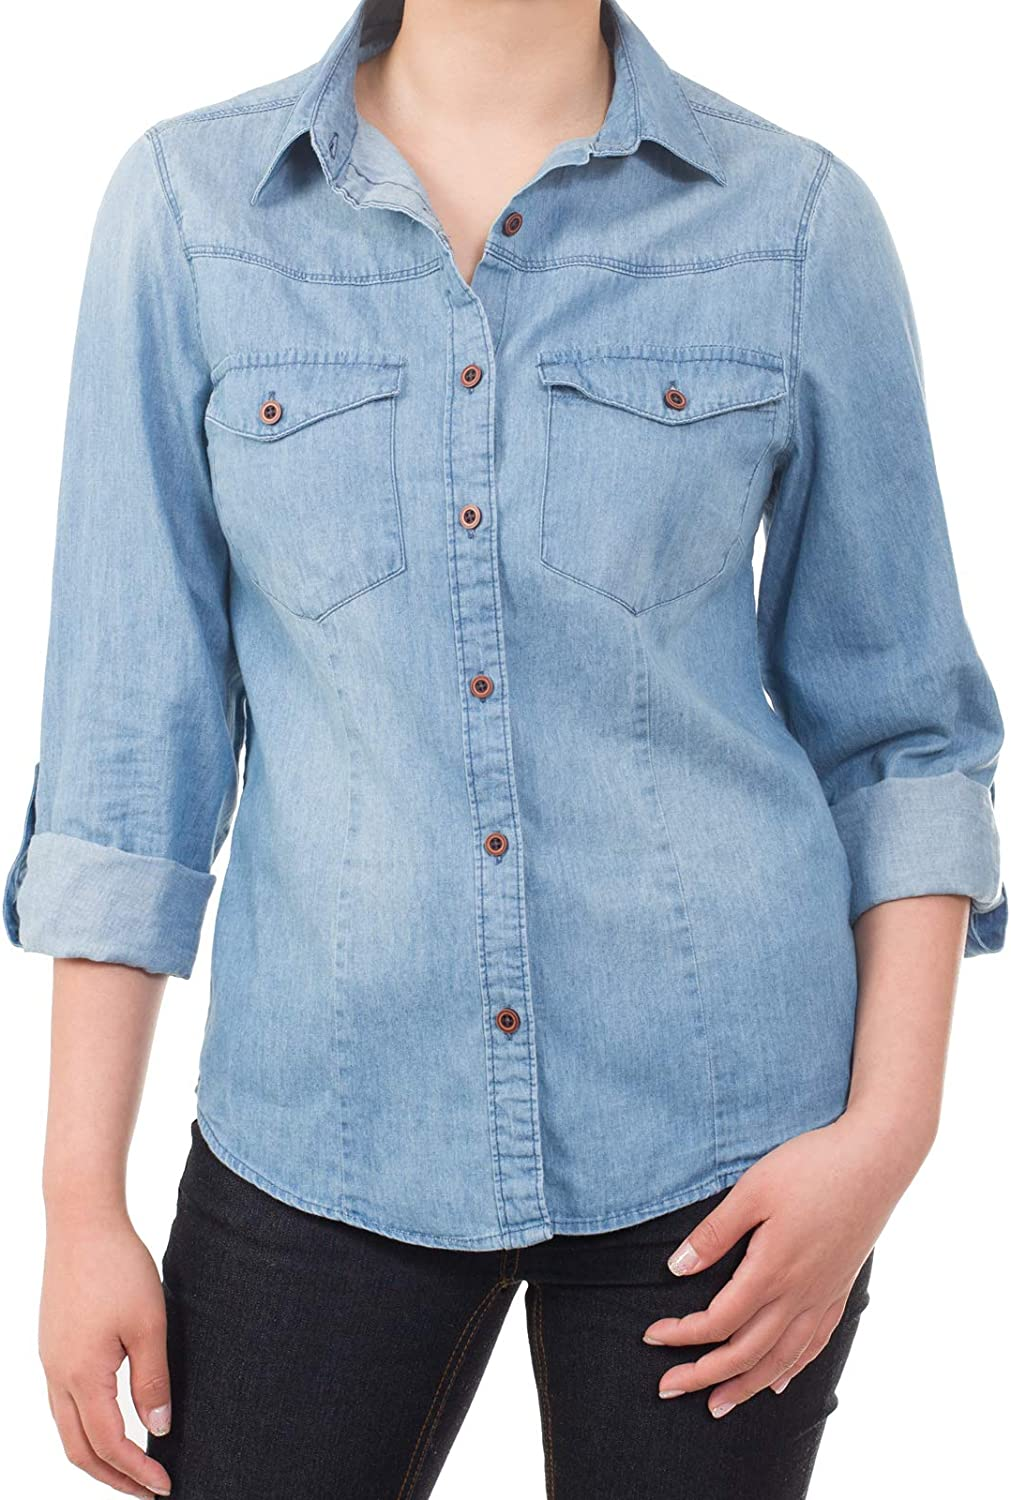 MixMatchy Women's Casual Daily Long/Roll Up Sleeve Button Down Denim Chambray Shirt (S-3XL)